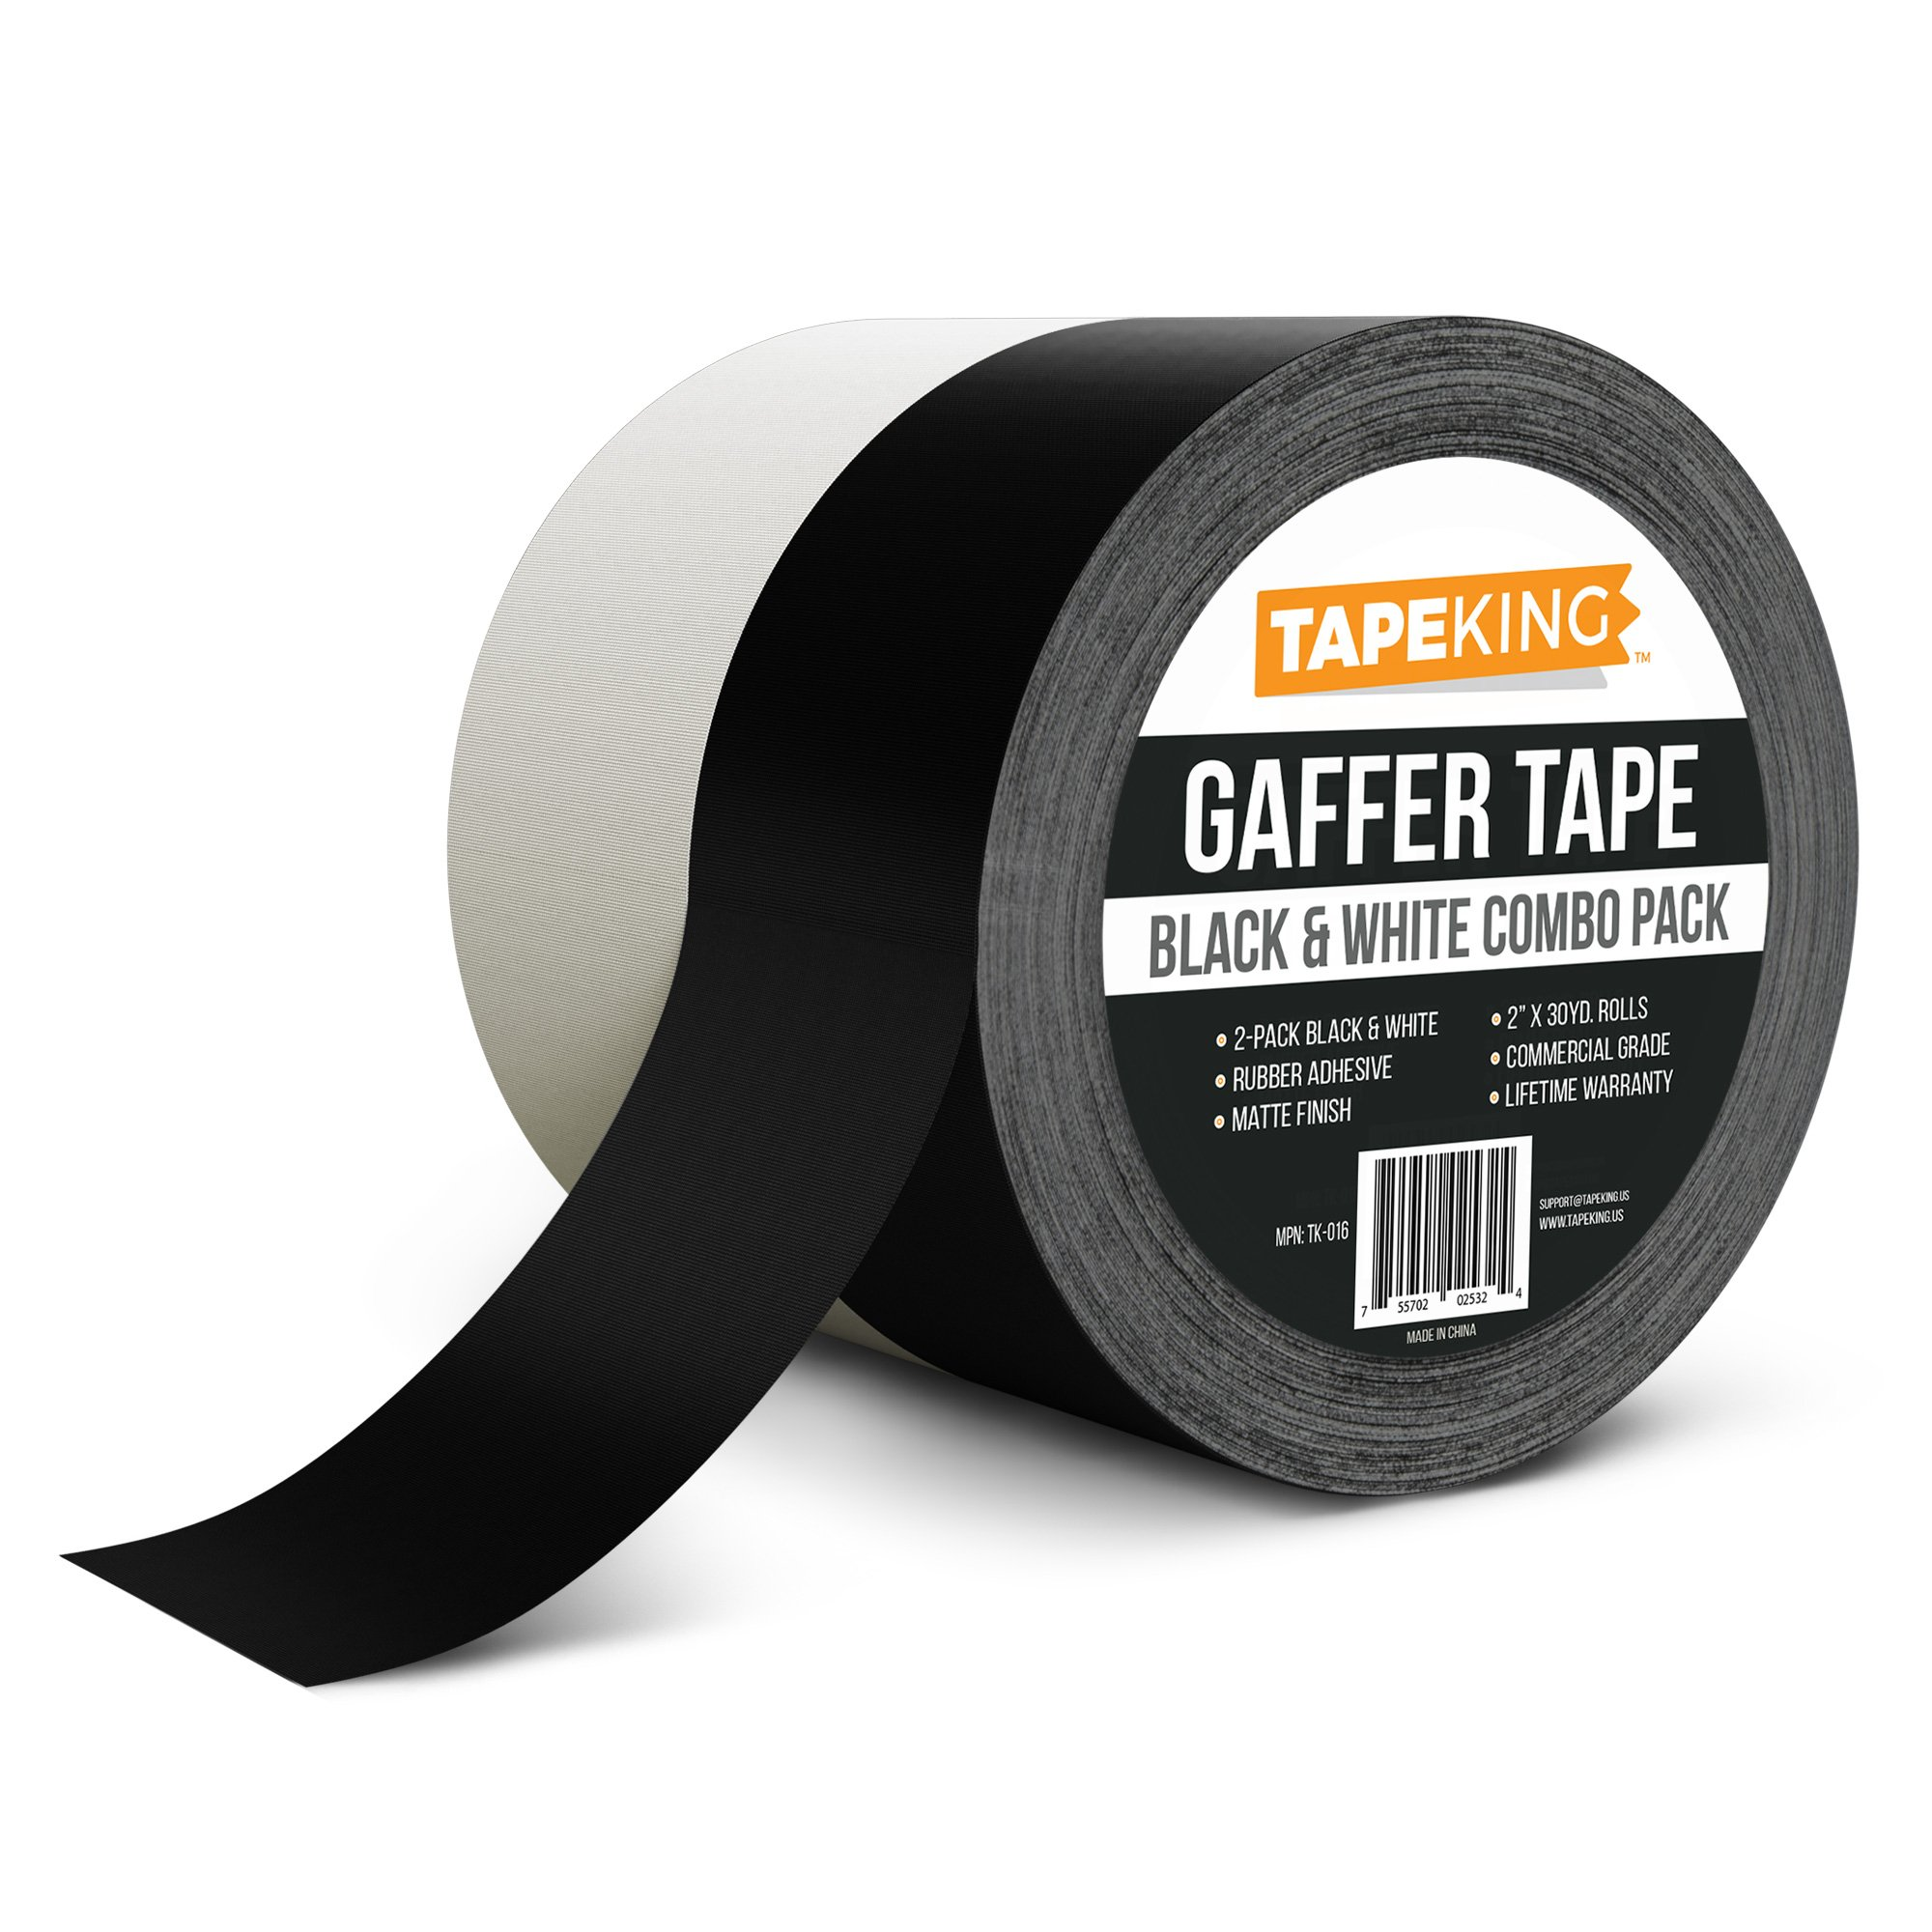 Tape King Gaffers Tape (2-Pack) Premium Professional Grade, 2 Inch X 30 Yards each (Black & White Combo Gaffer Pack) by Tape King